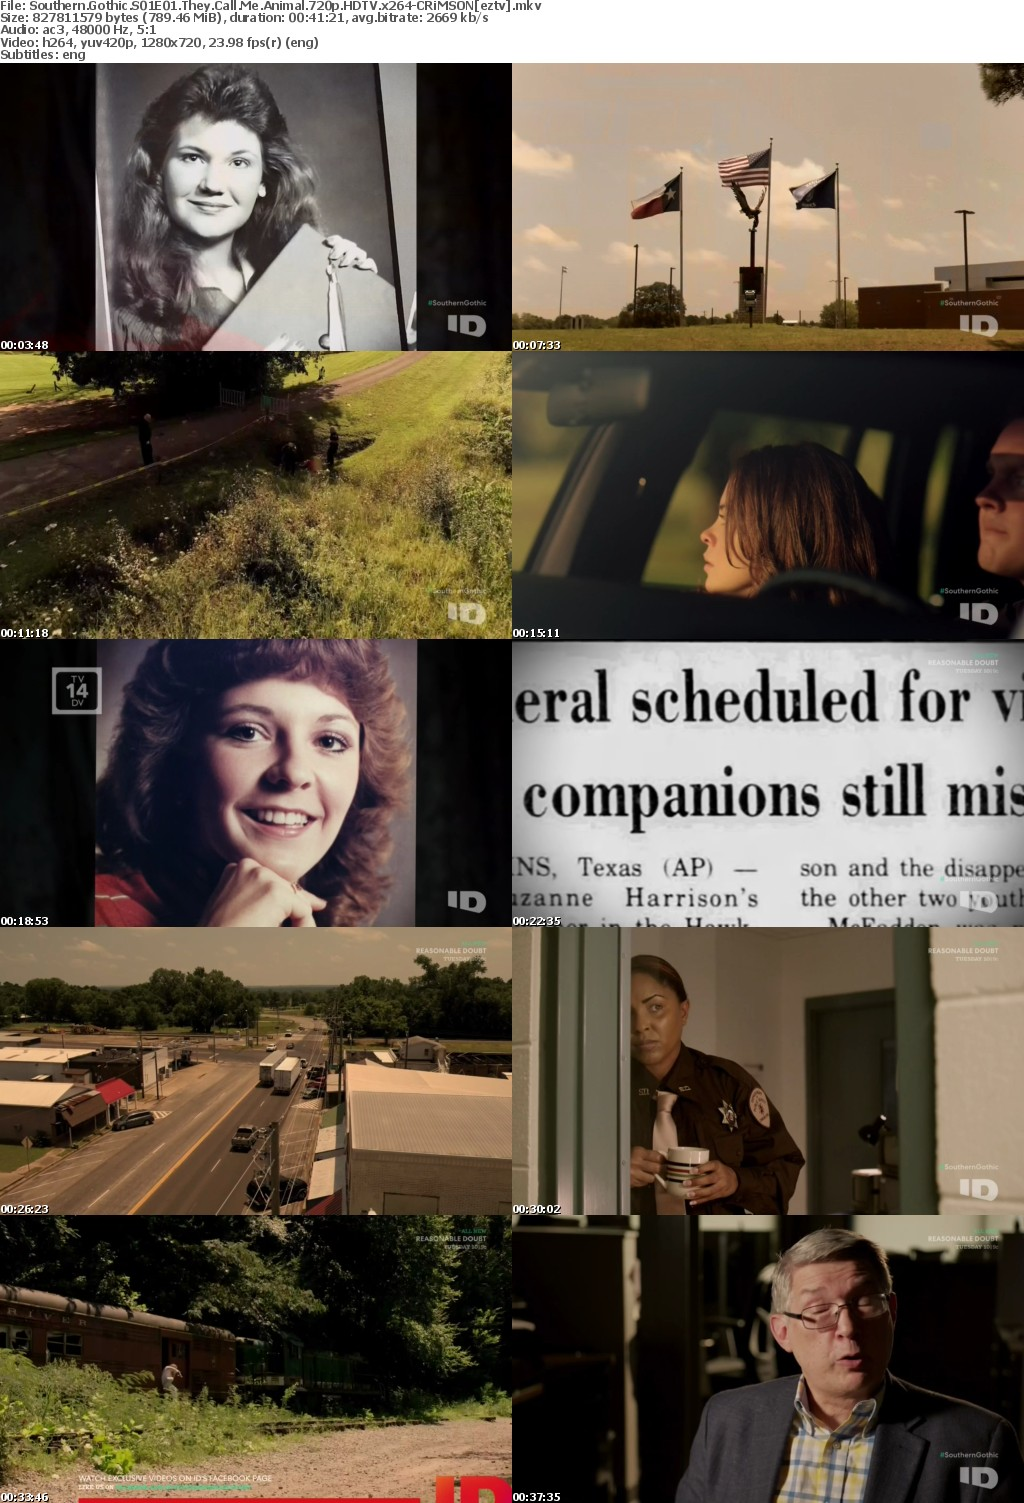 Southern Gothic S01E01 They Call Me Animal 720p HDTV x264-CRiMSON